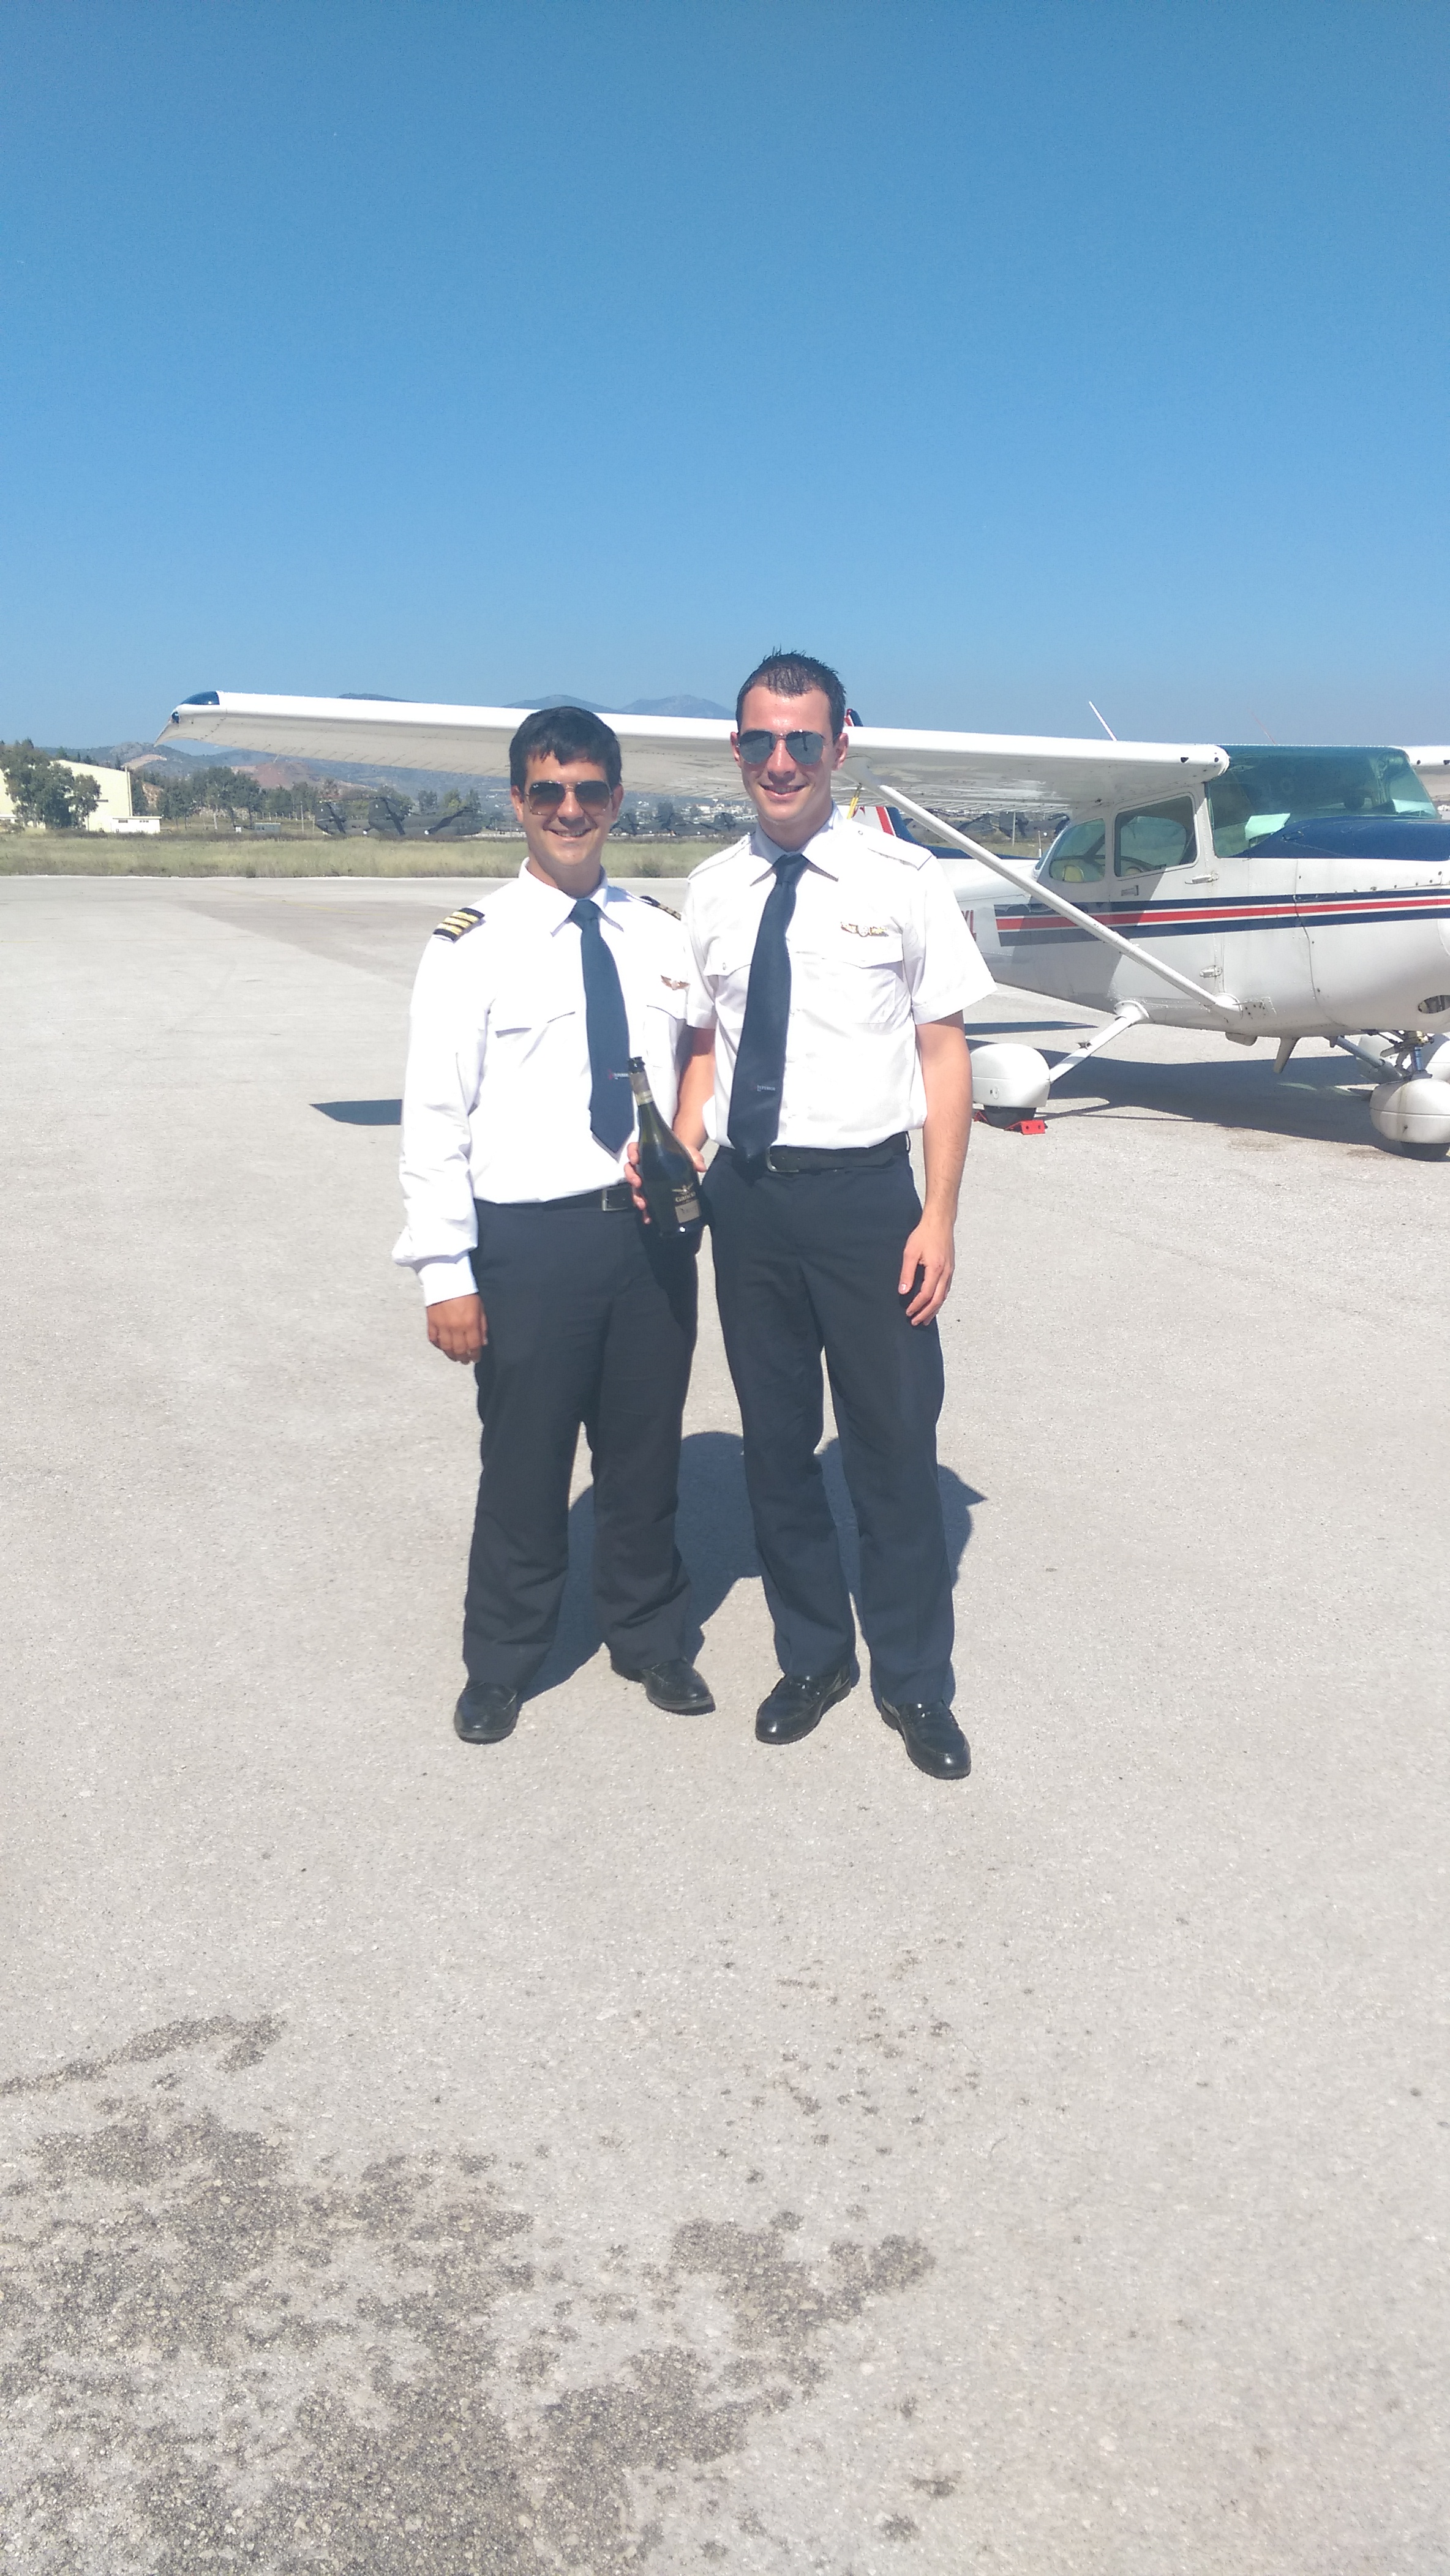 One more solo flight was successfully completed. This time for Mr. Antonopoulos Paris!